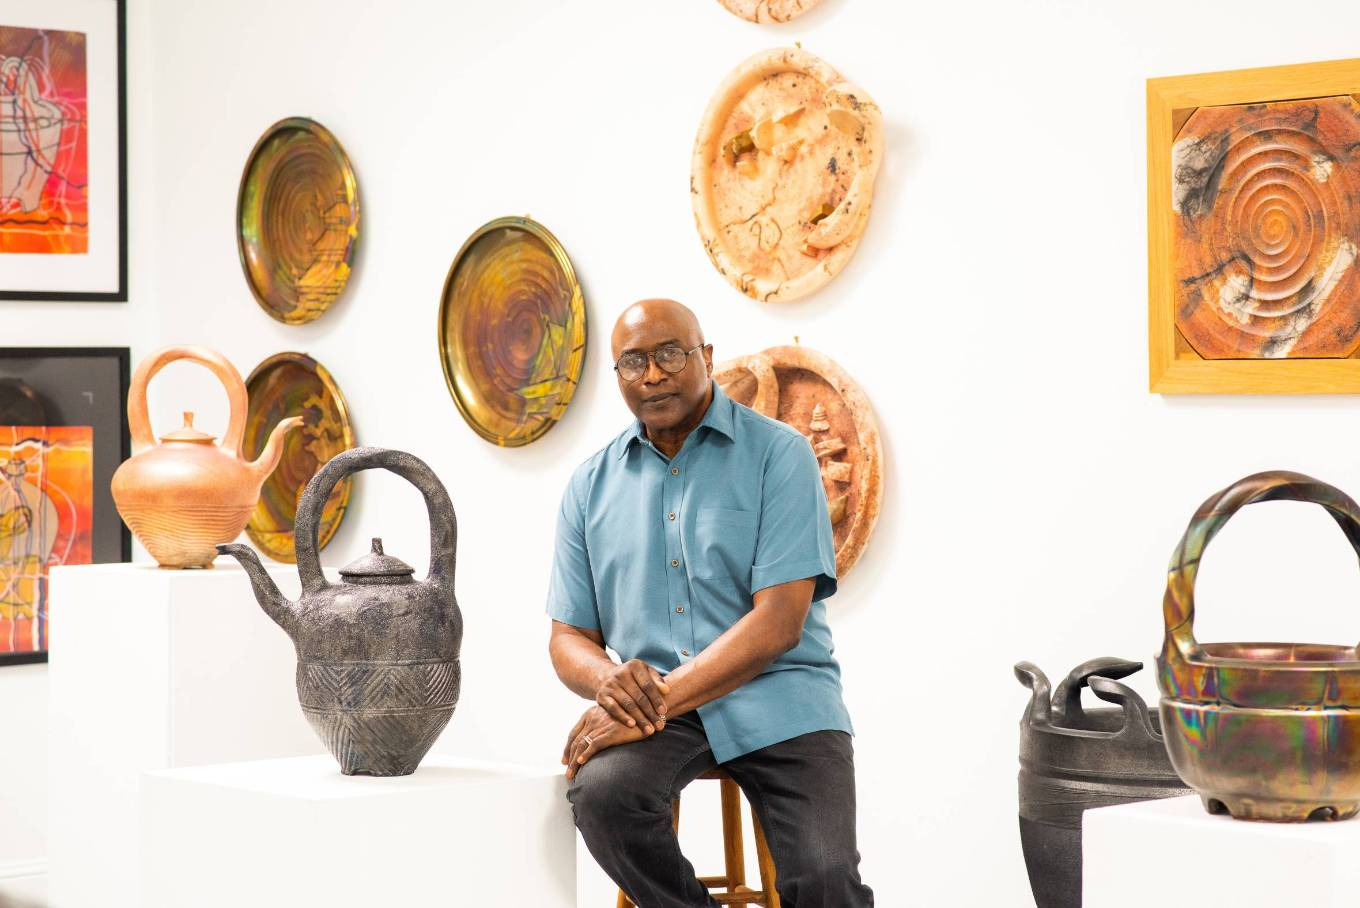 Headshot of Professor James C. Watkins, surrounded by his ceramic work. Photo by Bonni Oakes.